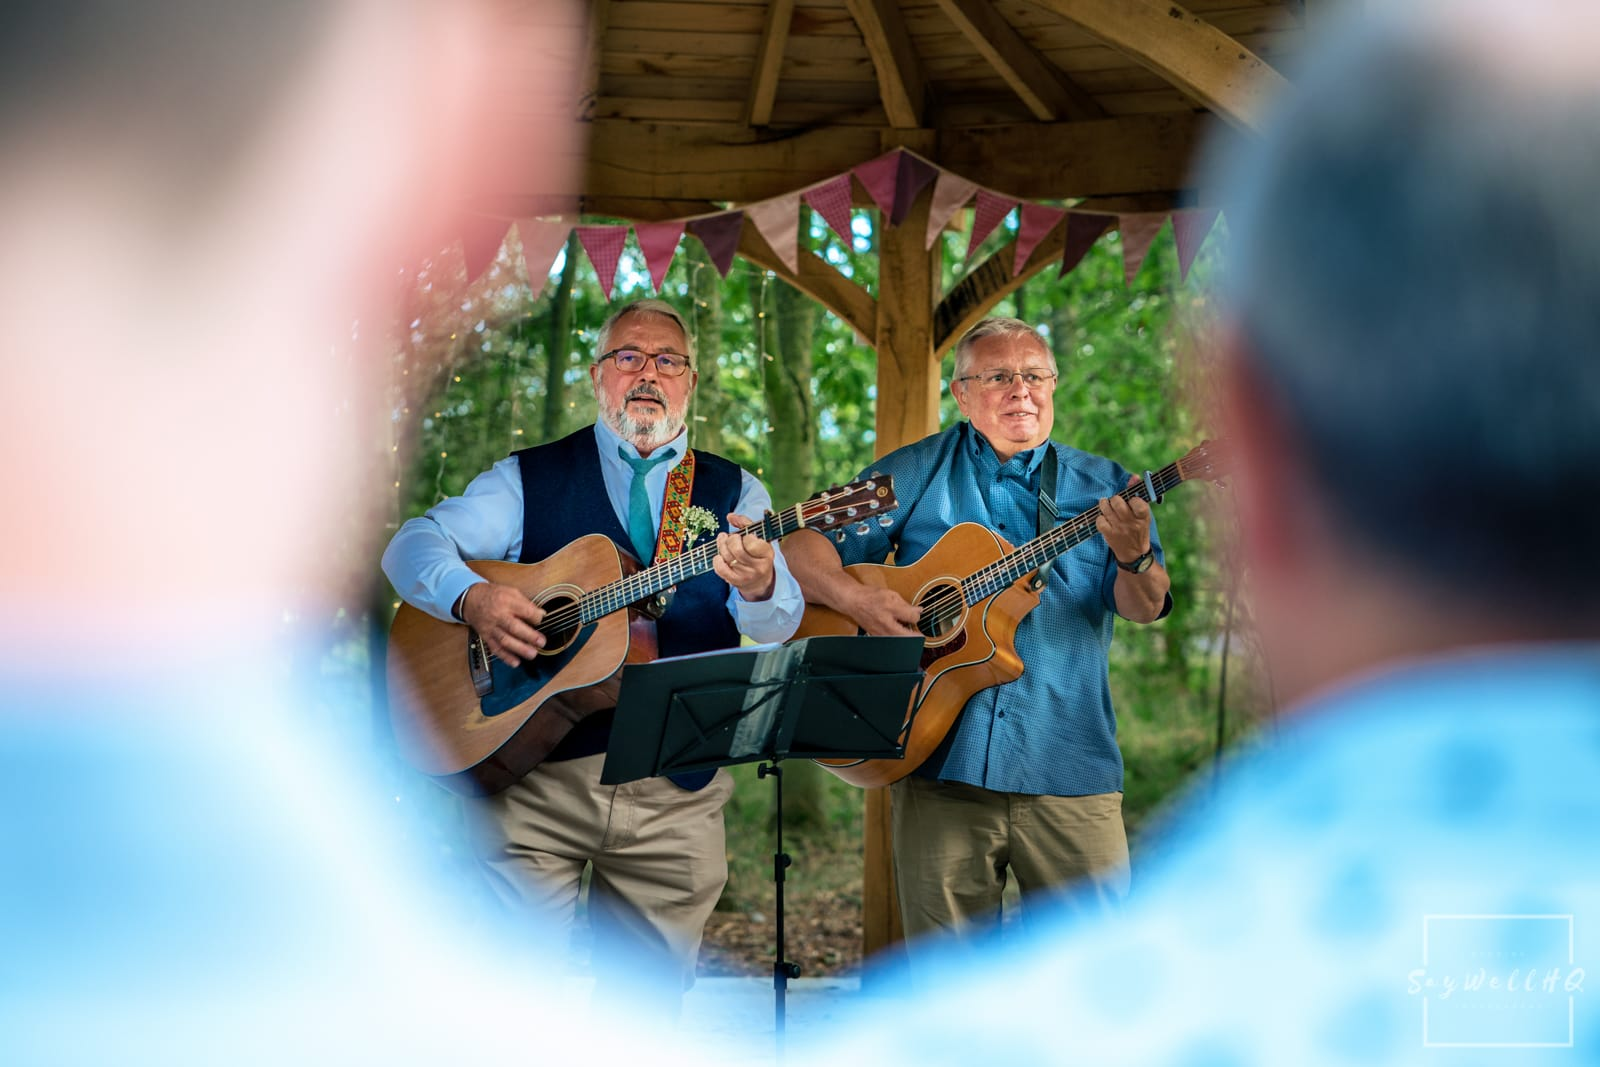 Mapperley Farm Wedding Photography + Mapperley Farm Wedding Photographer + Mapperley Farm Wedding Photography + Mapperley Farm Wedding Photographer + father of the bride plays guitar in the woodland